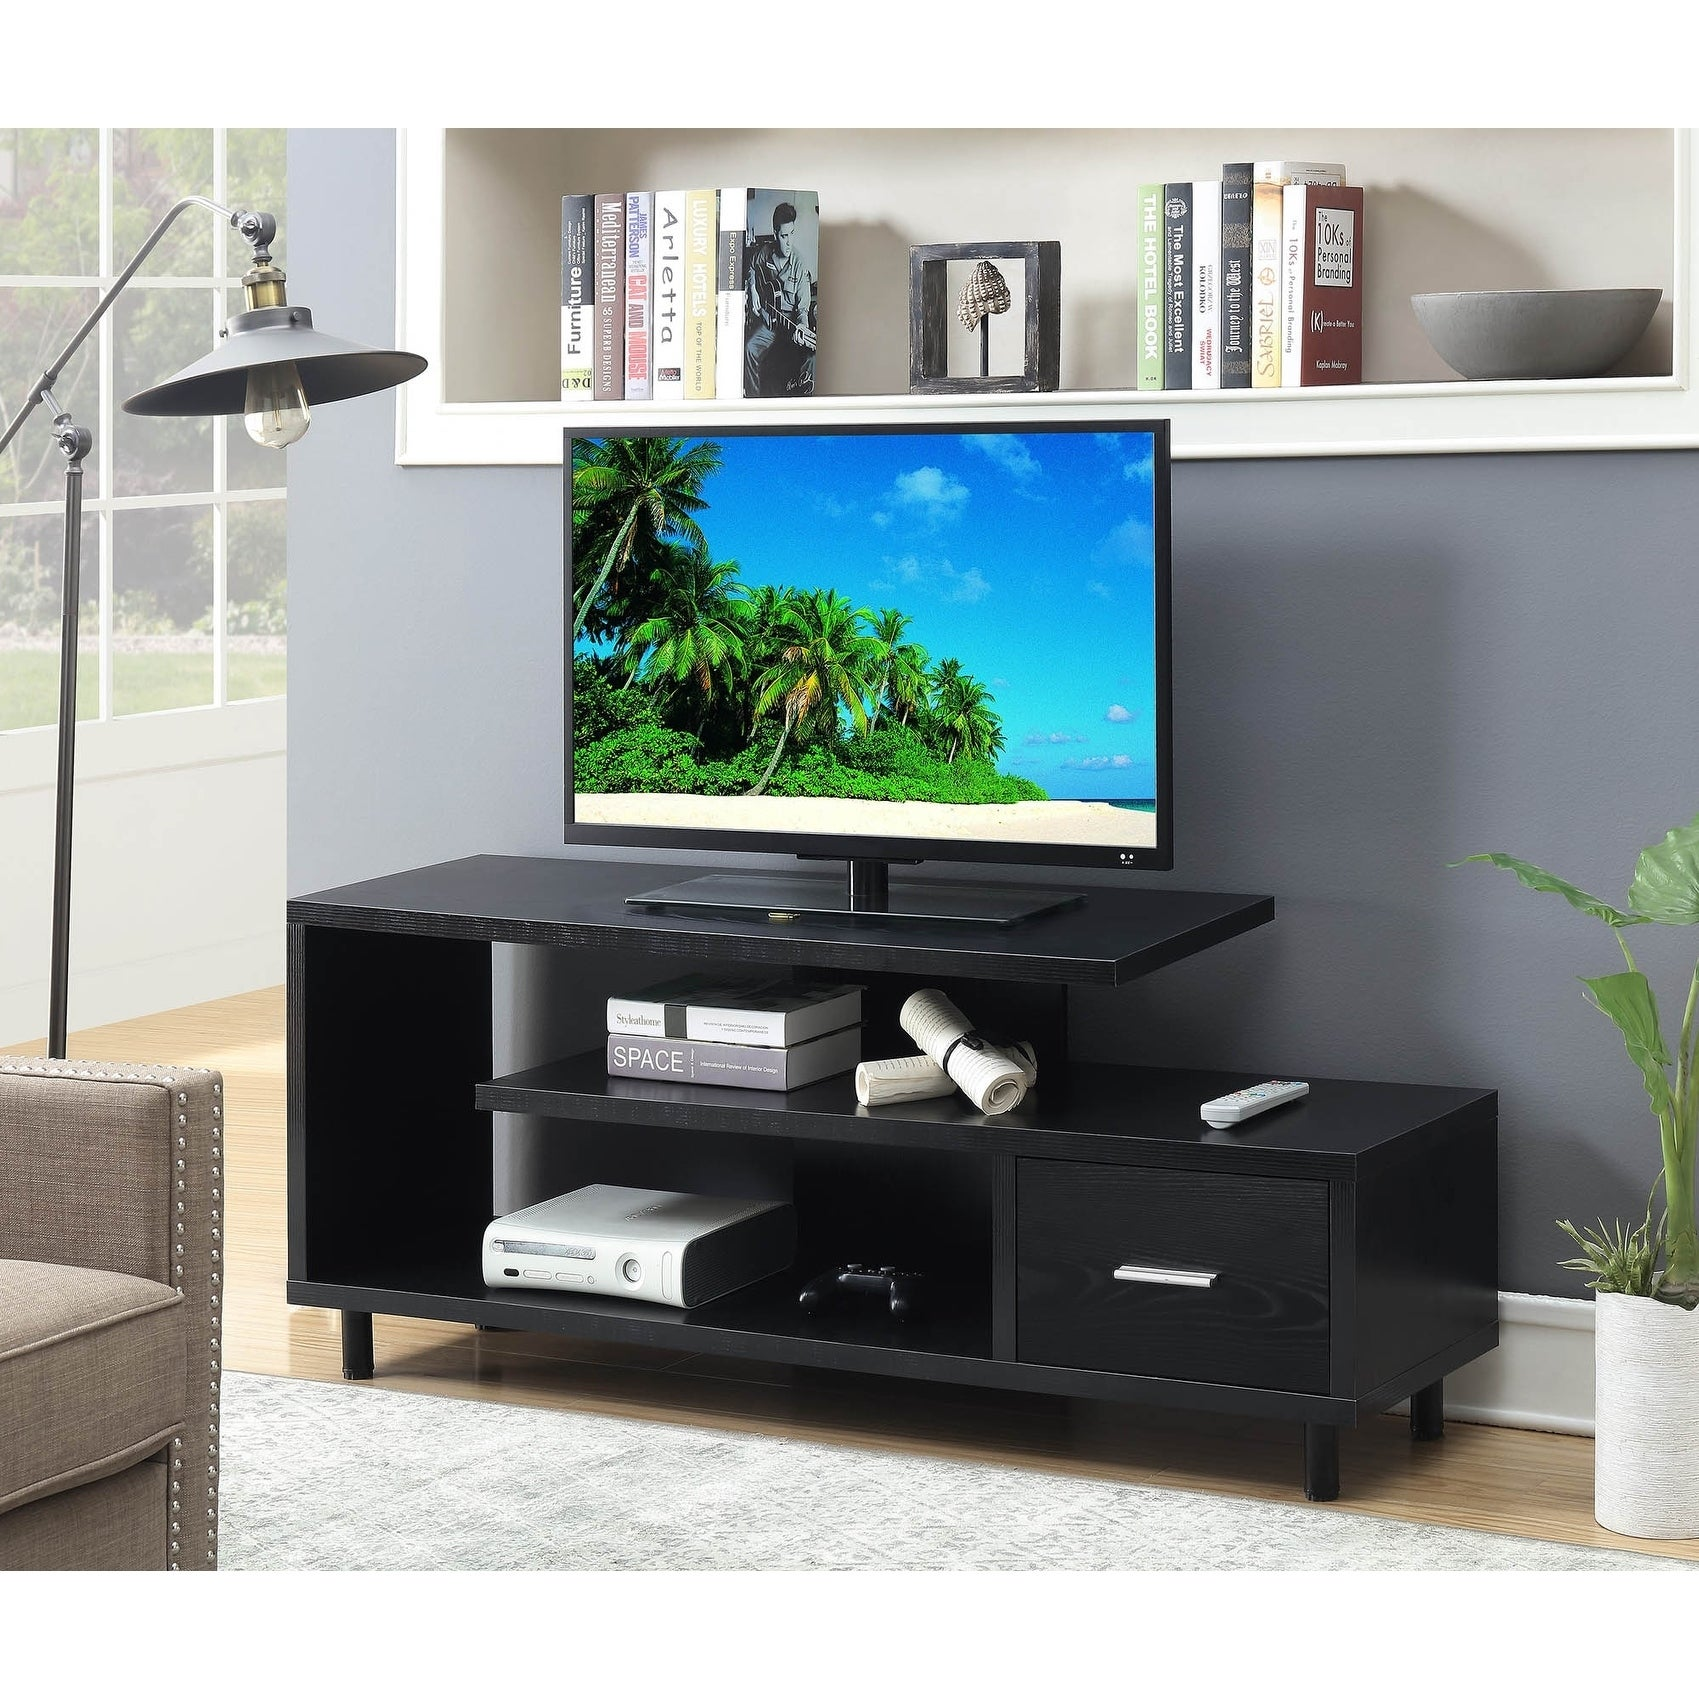 Expo Tv Stands : Trade show tv stand knockdown designs with travel cases